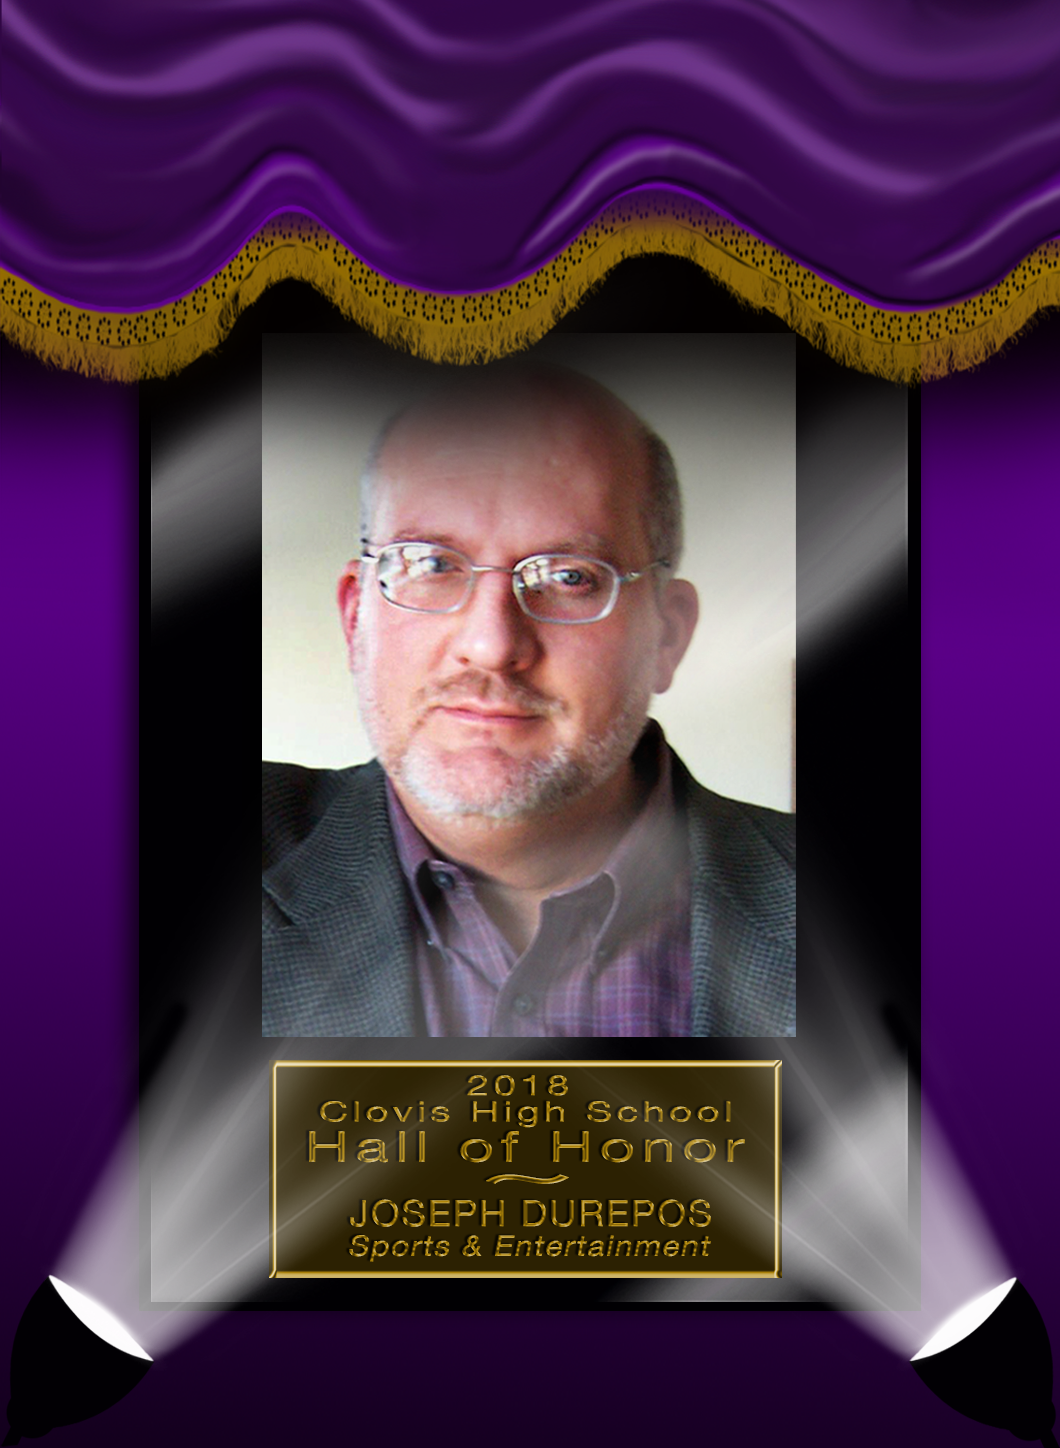 Image with text announcing Hall of Honor Inductee Joseph Durepos